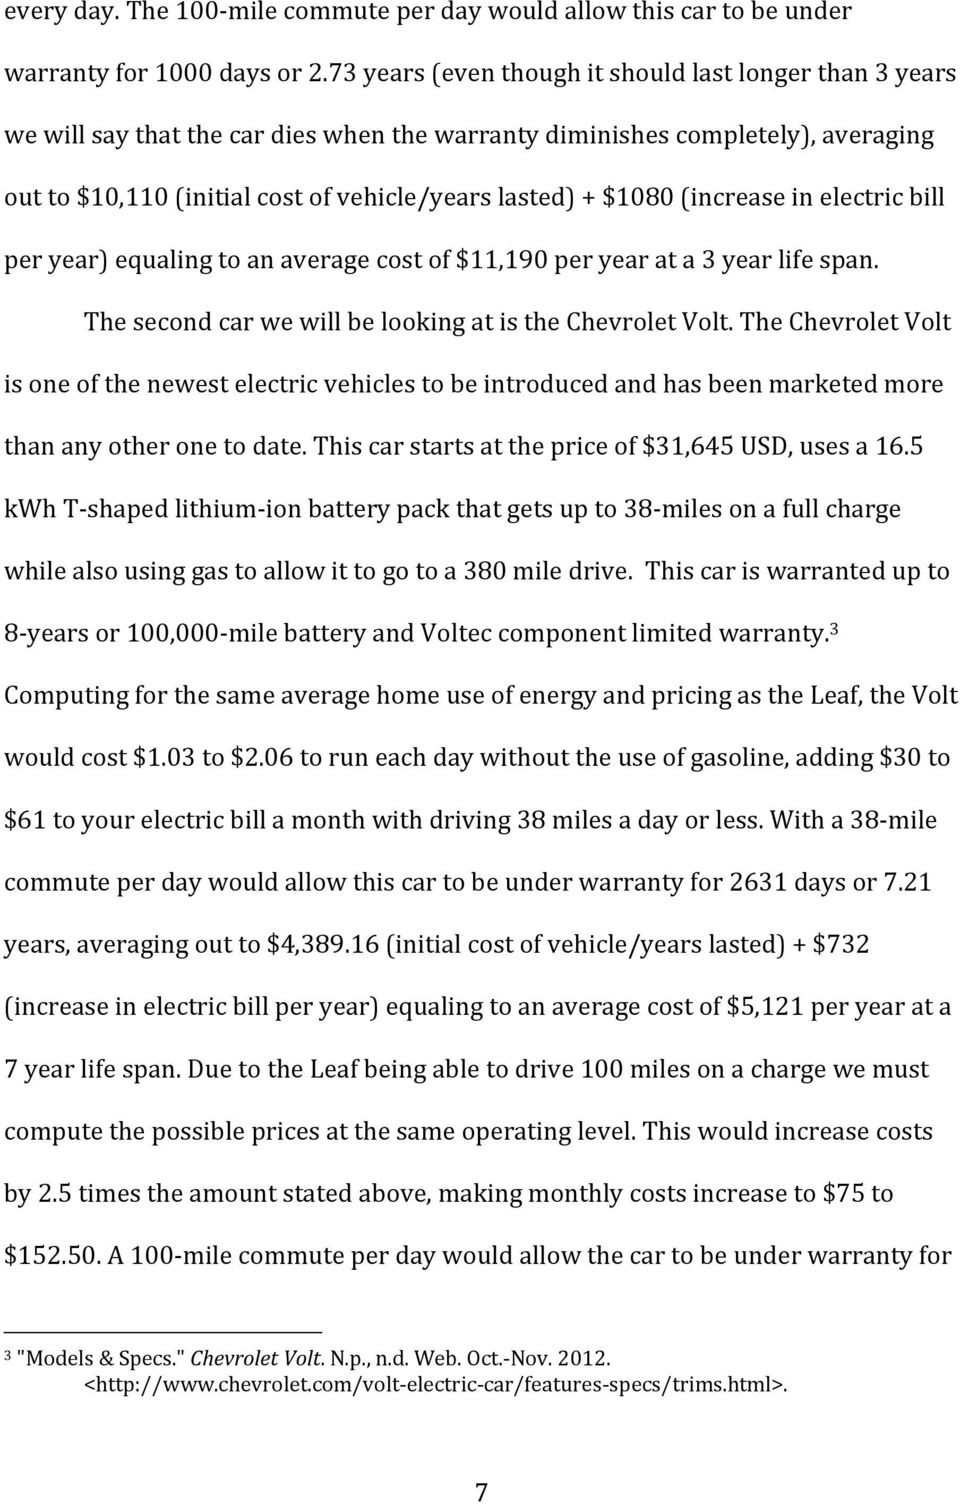 $1080 (increase in electric bill per year) equaling to an average cost of $11,190 per year at a 3 year life span. The second car we will be looking at is the Chevrolet Volt.